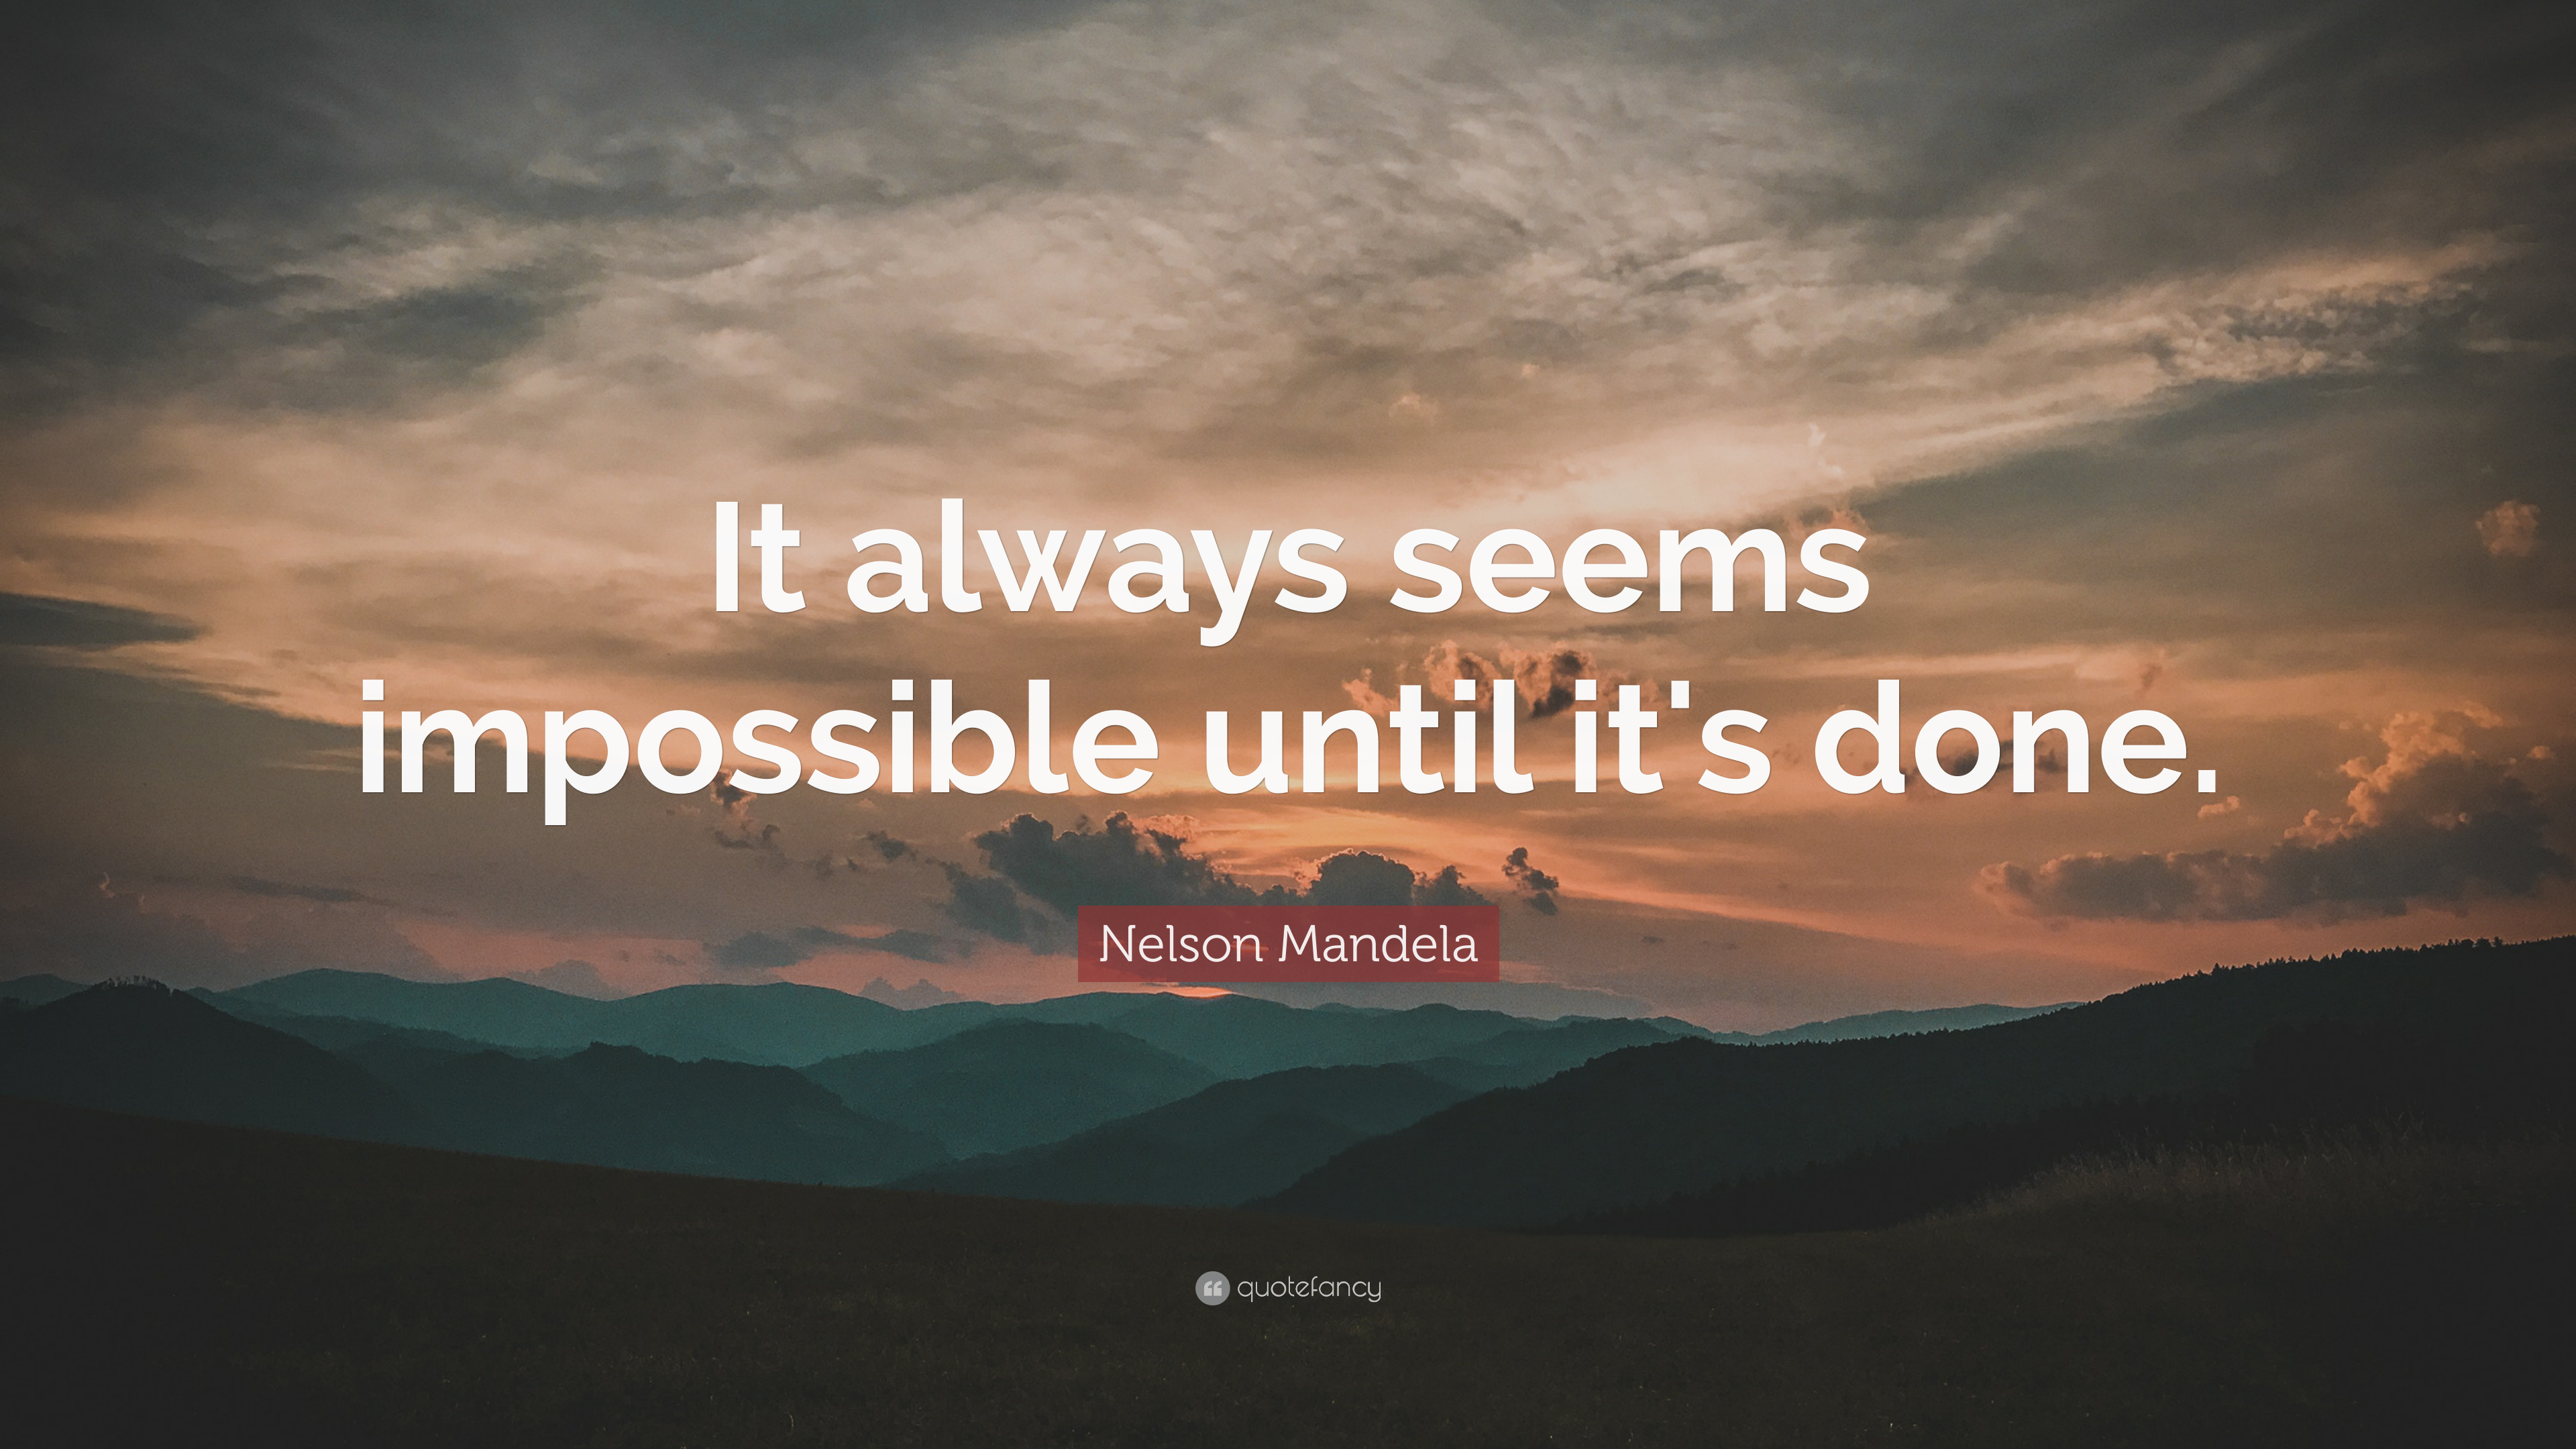 Gandhi Wallpapers With Quotes Nelson Mandela Quote It Always Seems Impossible Until It